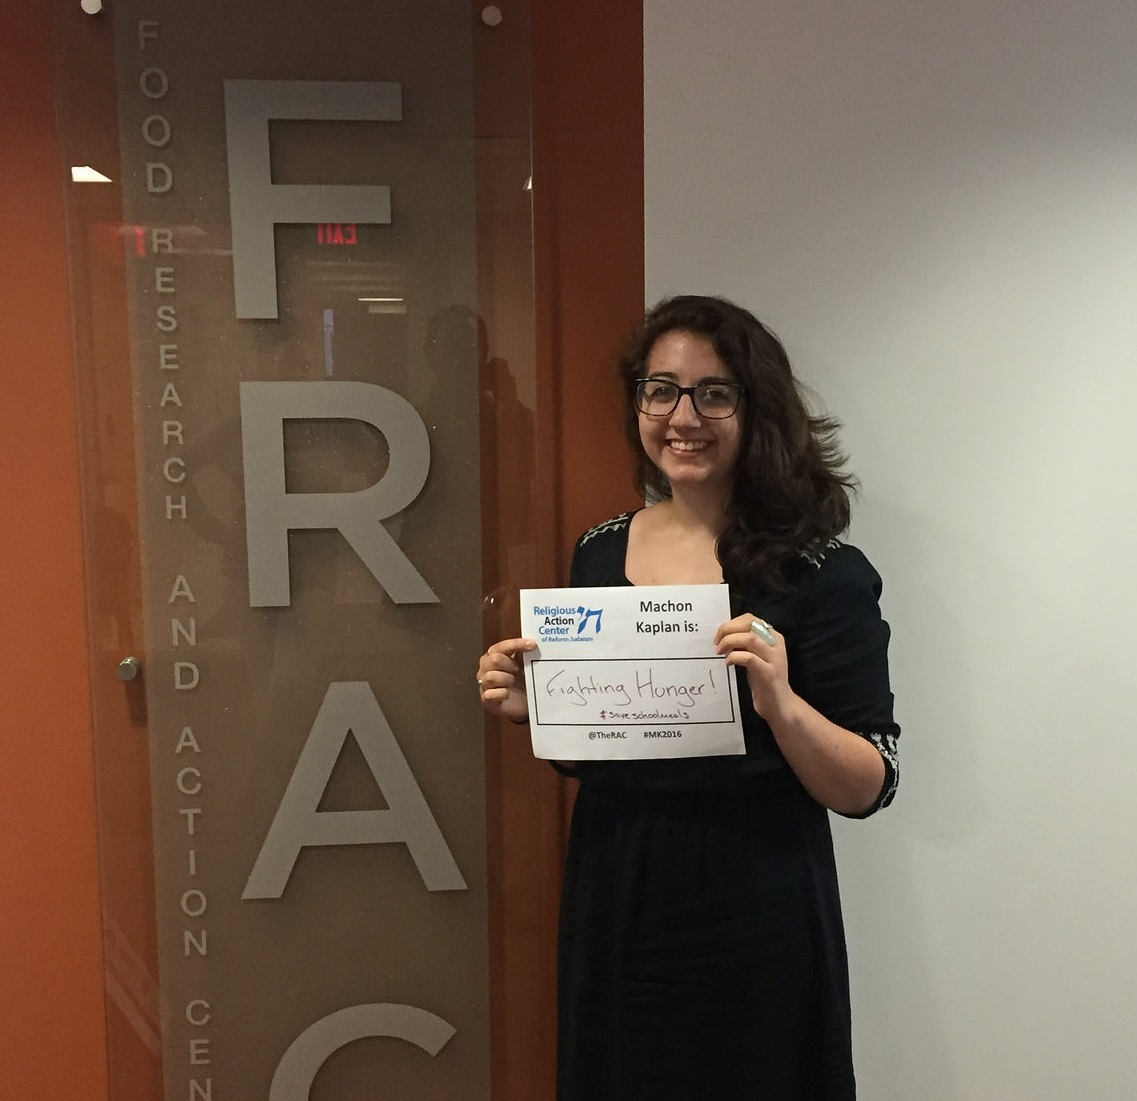 Ilana Symons in front of FRAC sign with MK is sign